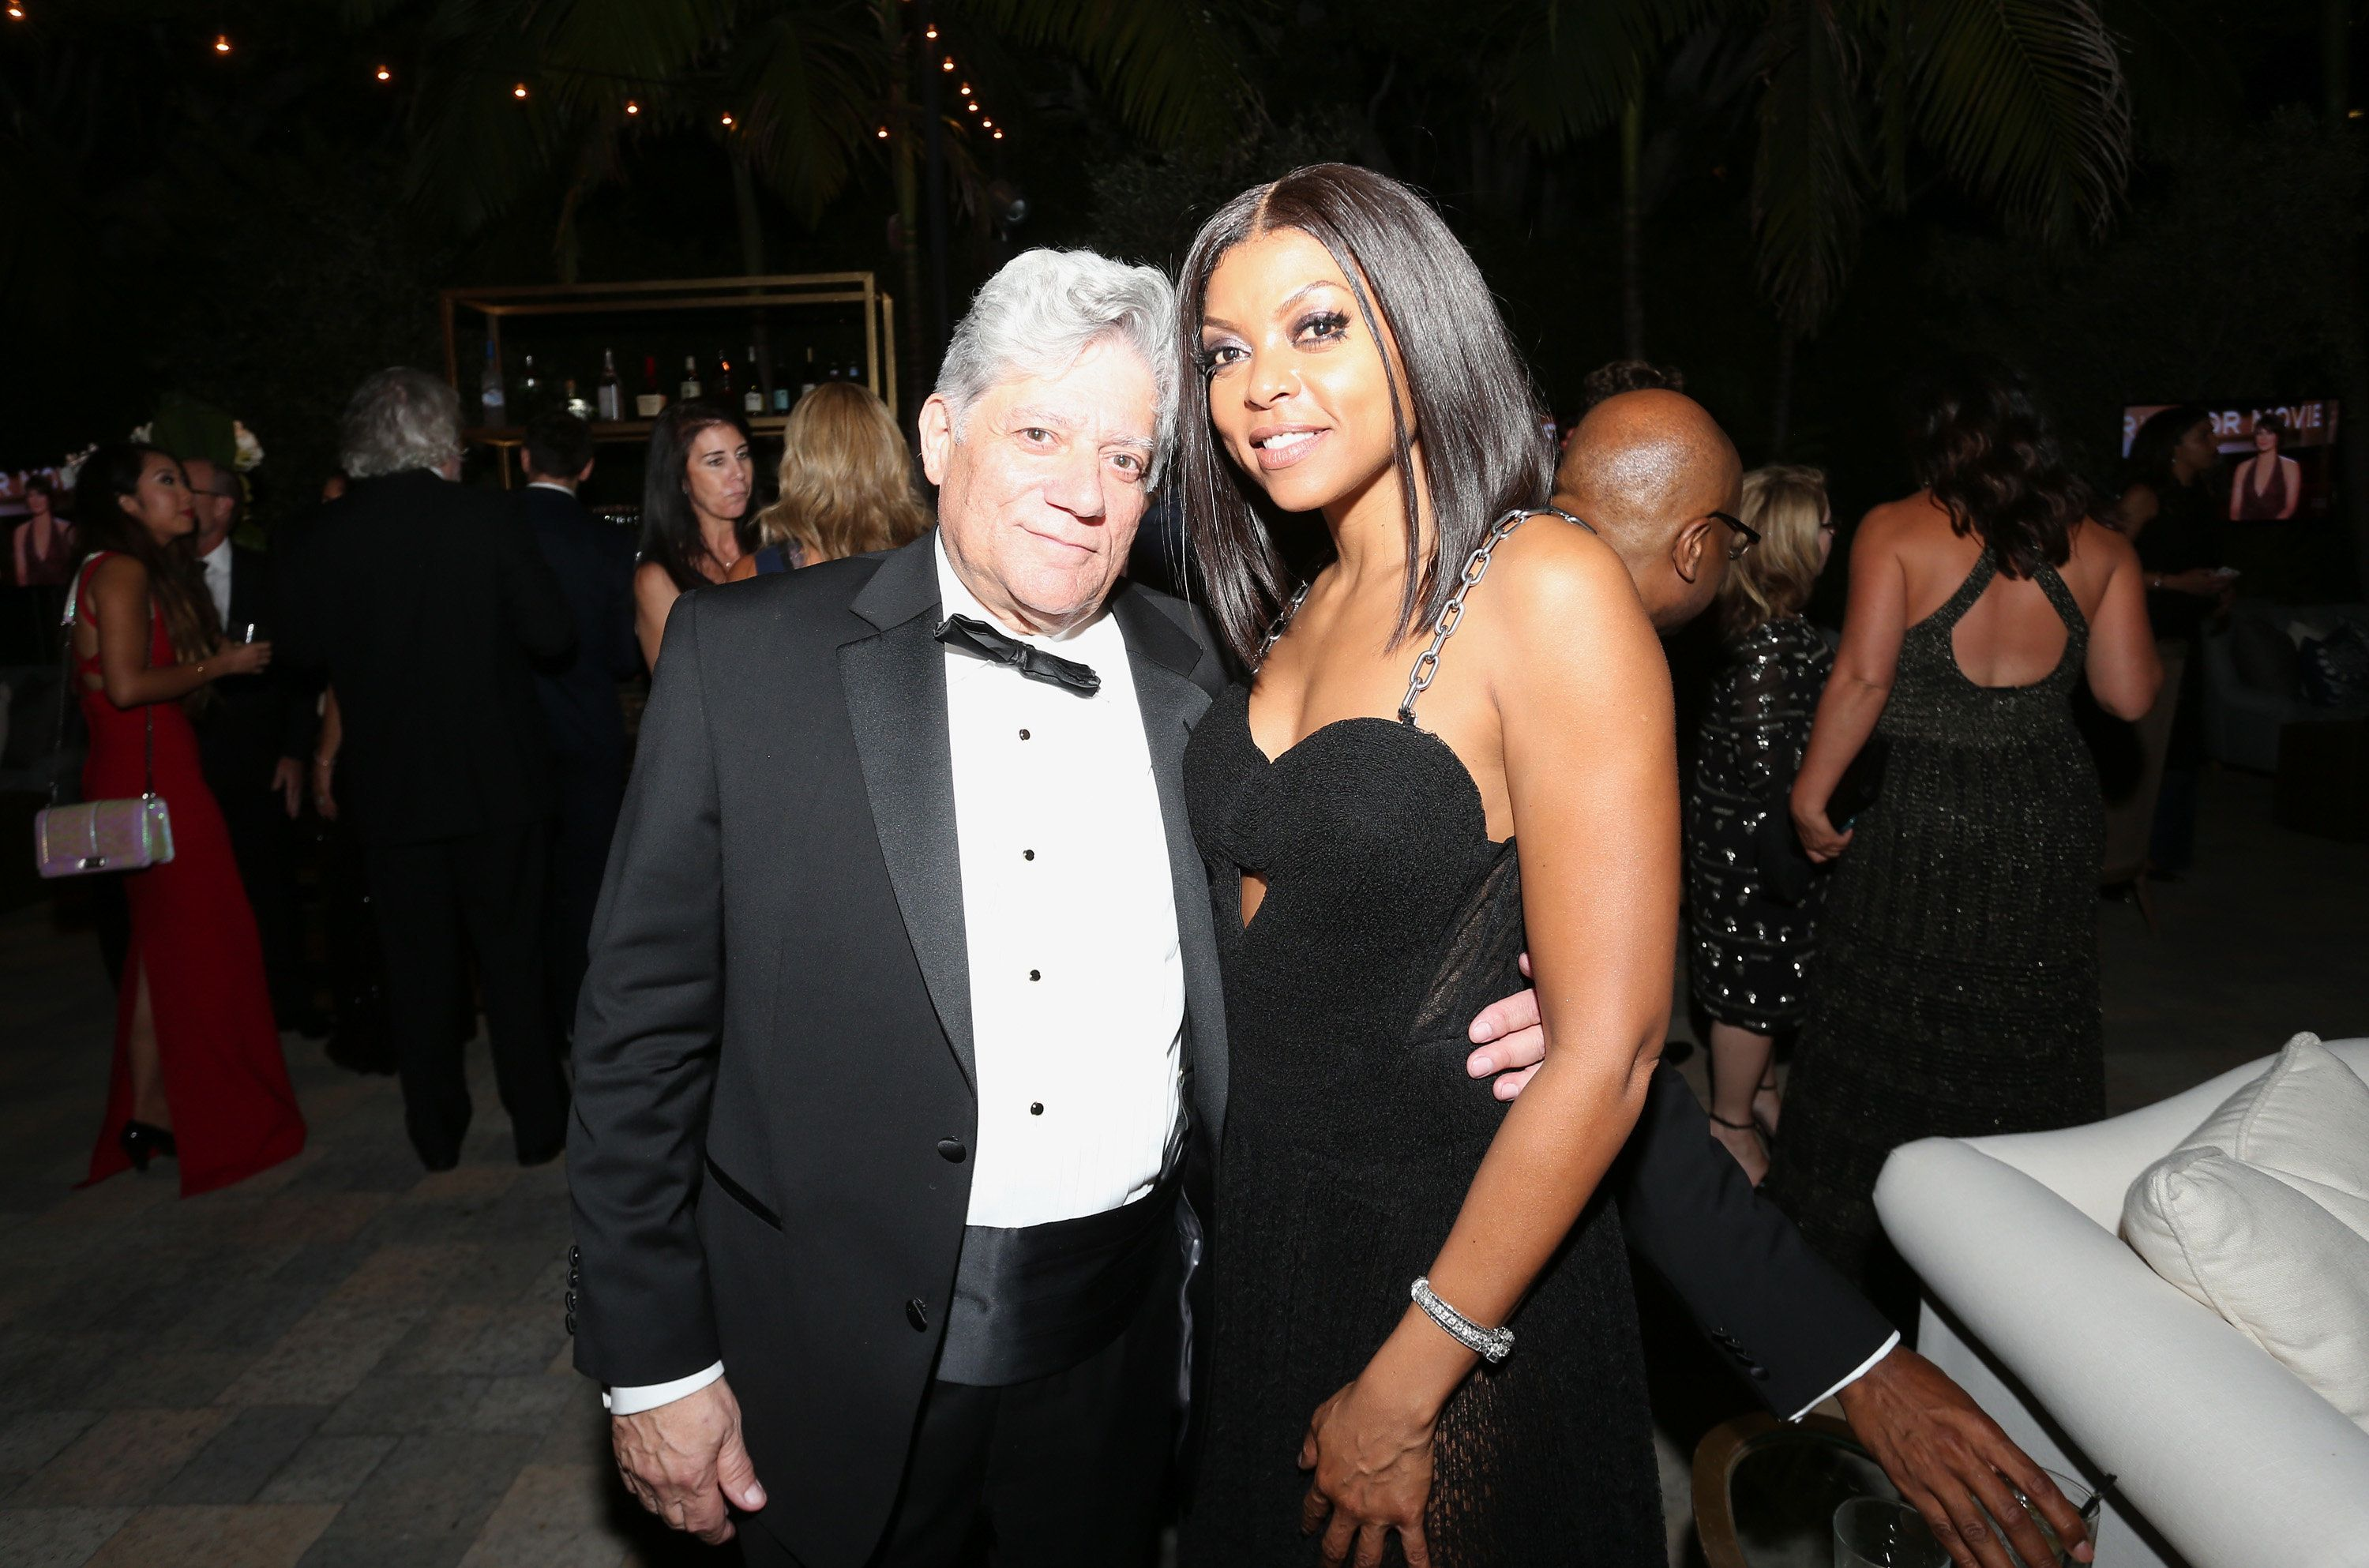 LOS ANGELES, CA - SEPTEMBER 20:  Actress Taraji P. Henson and her manager Vincent Cirrincione attend the 67th Primetime Emmy Awards Fox after party on September 20, 2015 in Los Angeles, California.  (Photo by Frederick M. Brown/Getty Images)